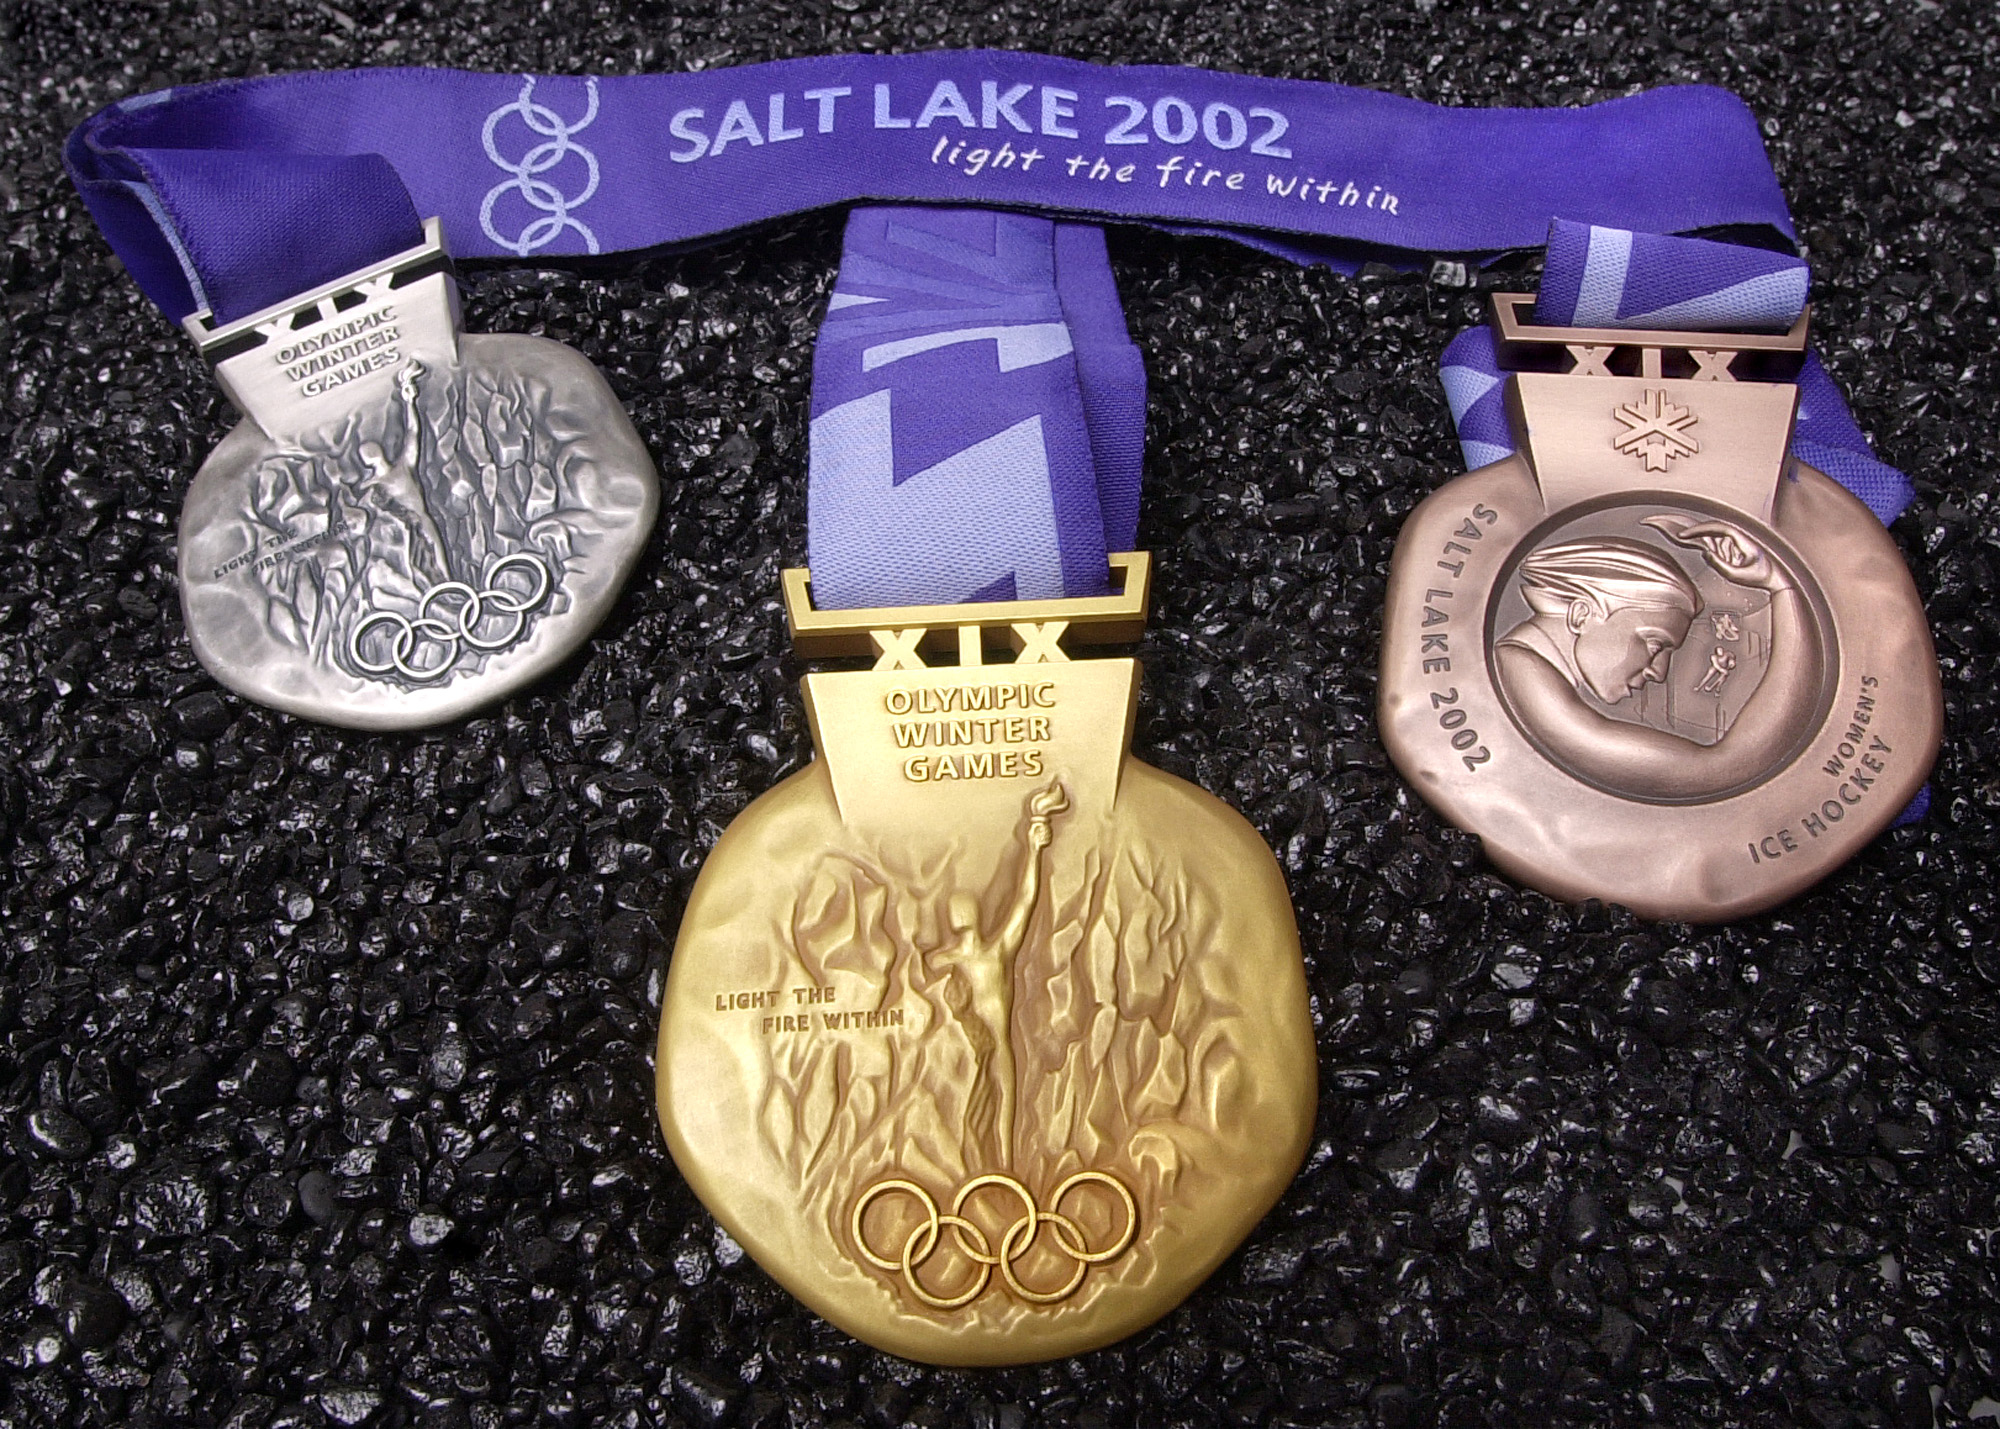 Olympics medals for the 2002 Winter Games are shown. Utah is bidding to host the Olympics once more.